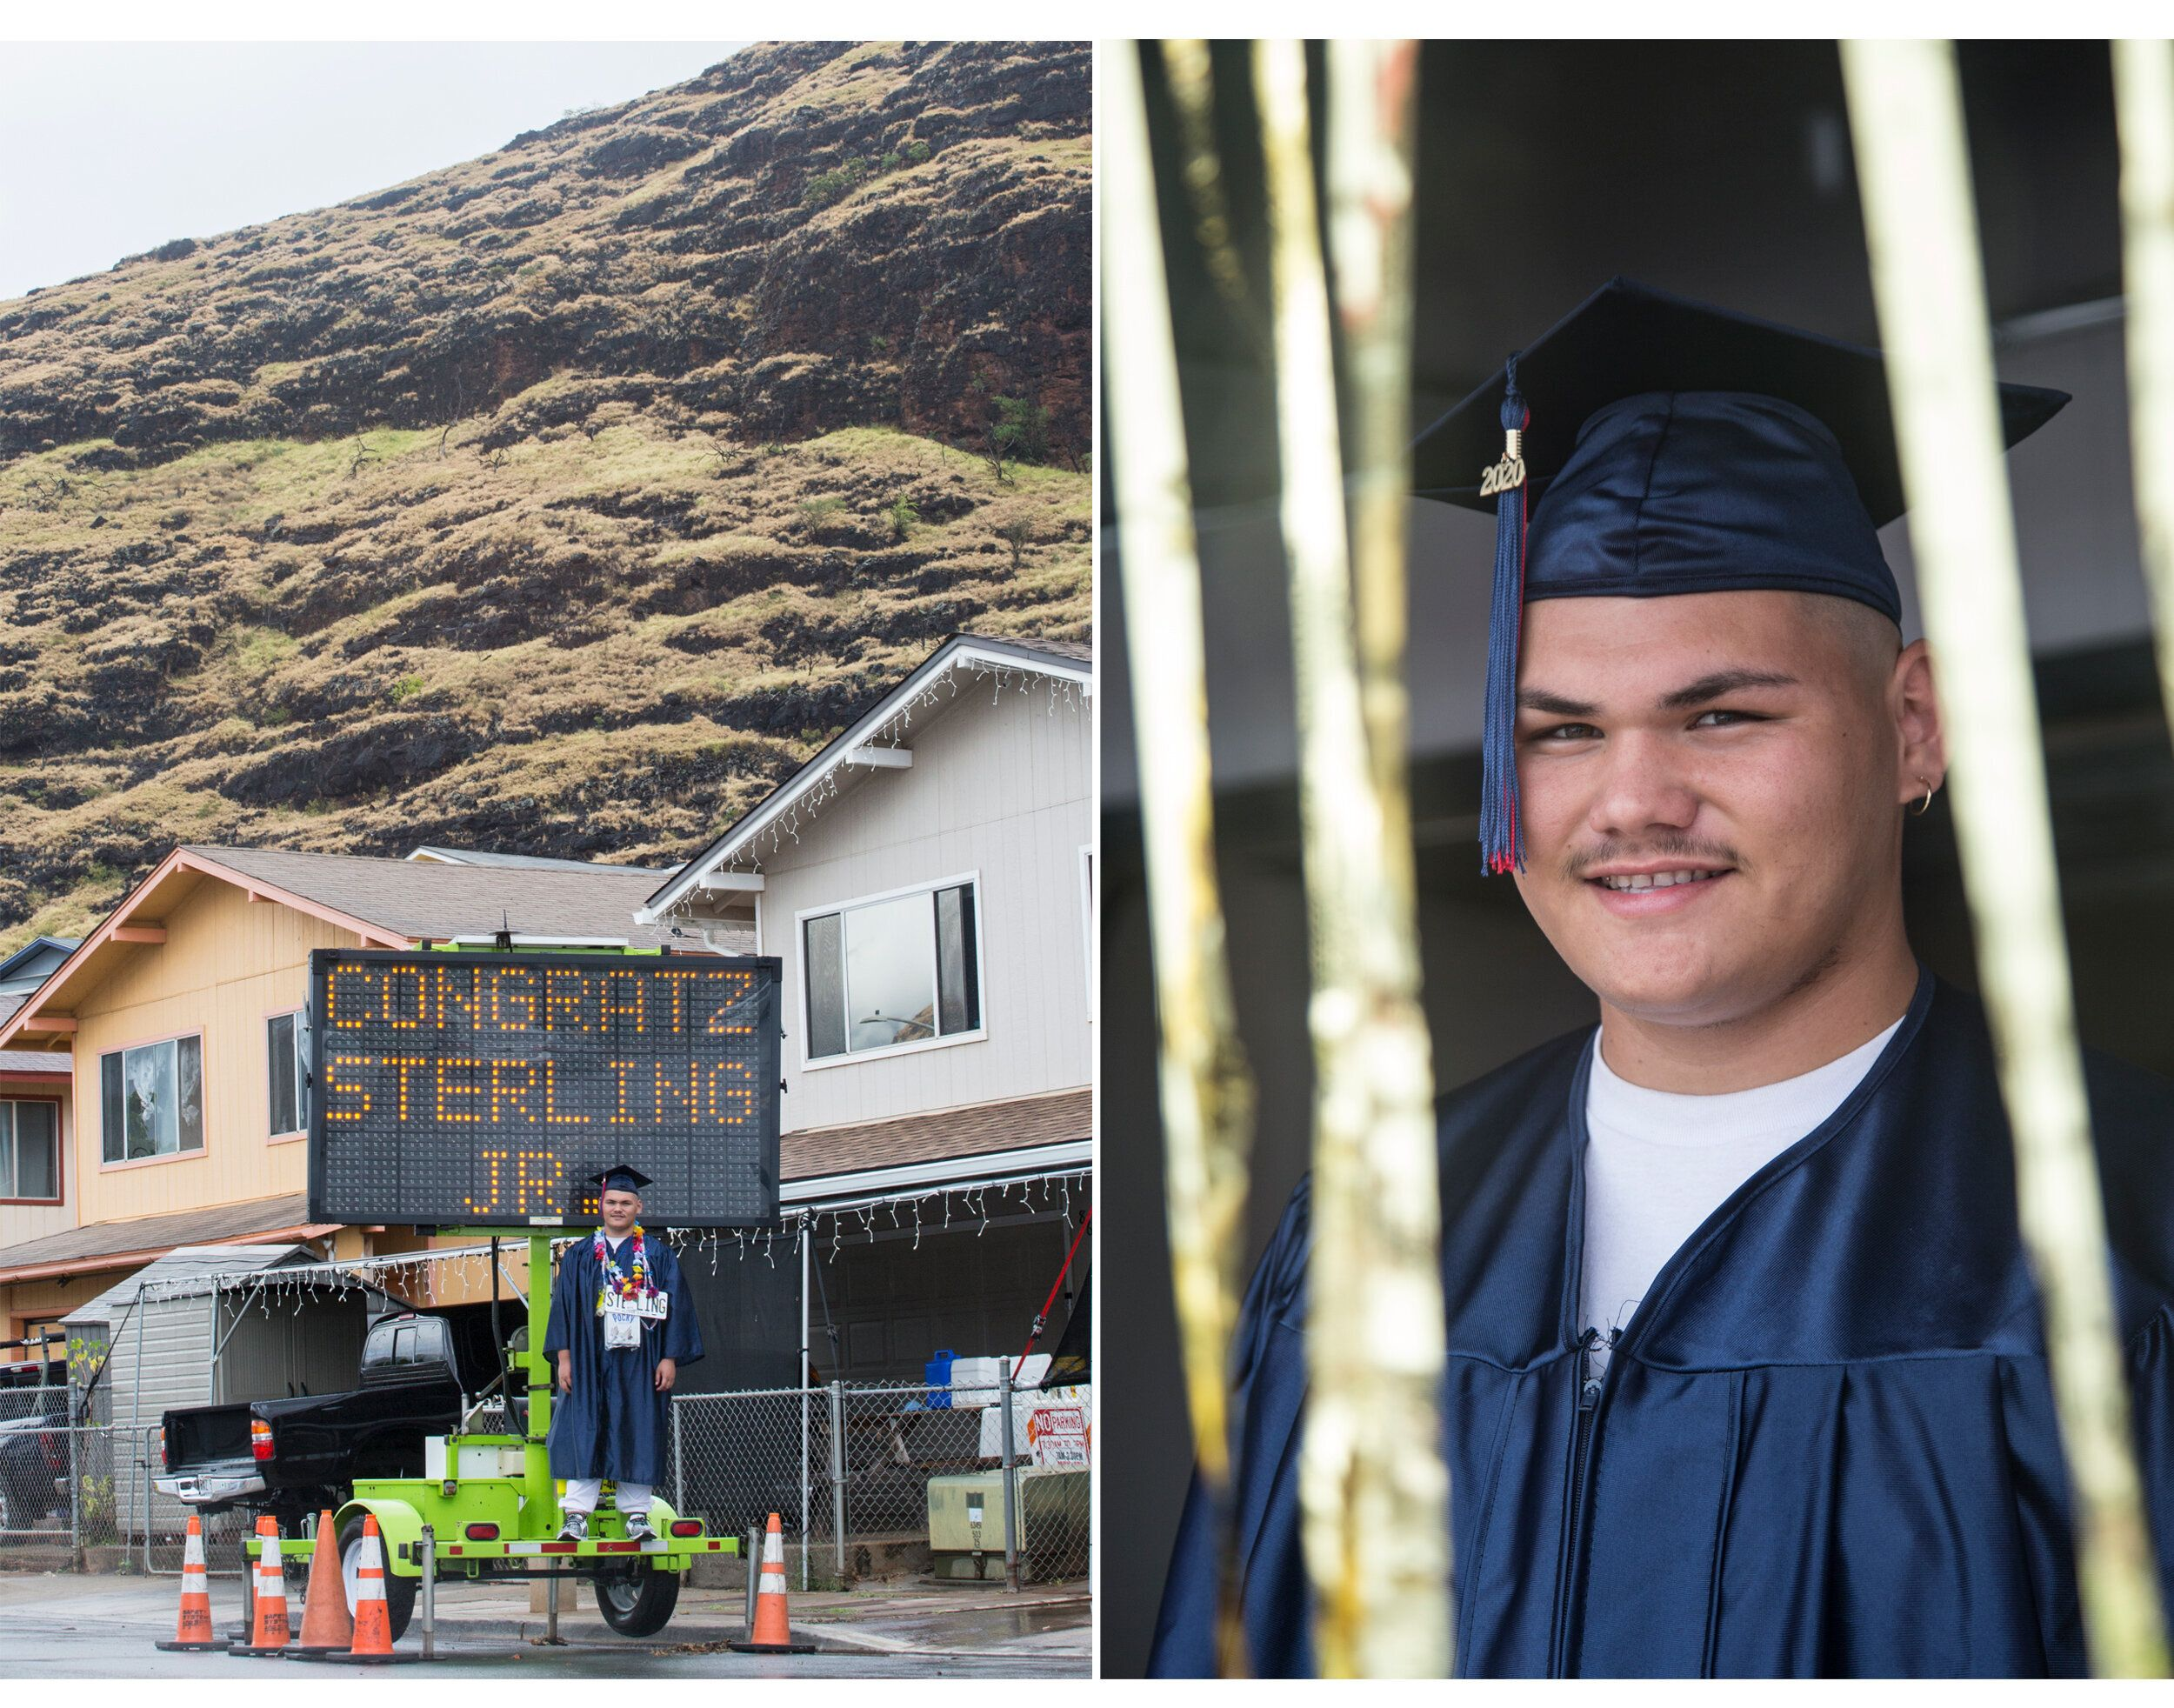 Sterling Hauki Williams Jr., a Waiʻanae High School graduate, stands atop a customized electronic road sign at his home in Wa